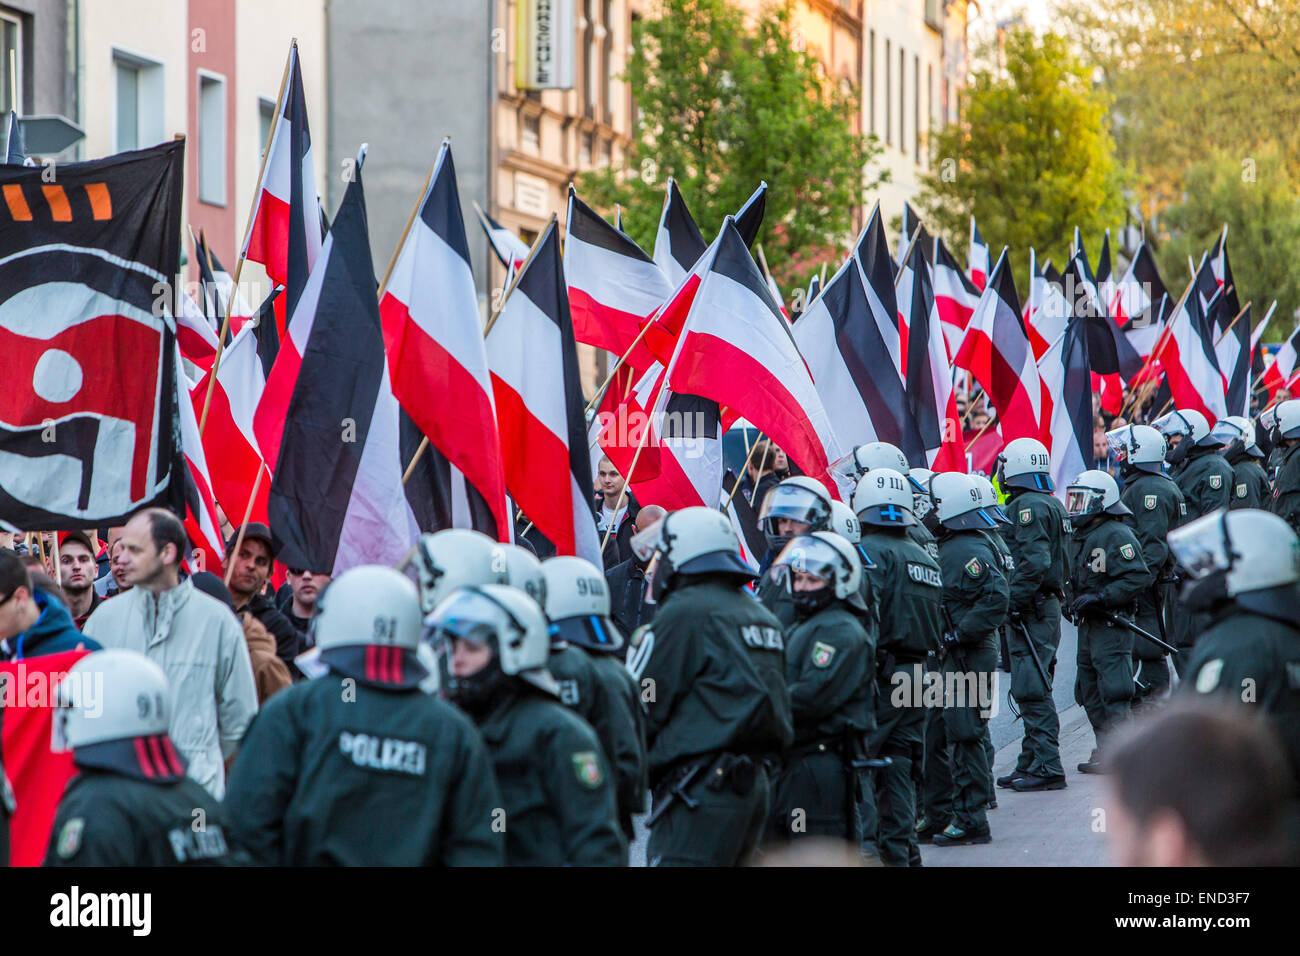 Demonstration of right wing Neo-Nazi party 'Die Rechte', a first of May, in Essen, Germany, - Stock Image